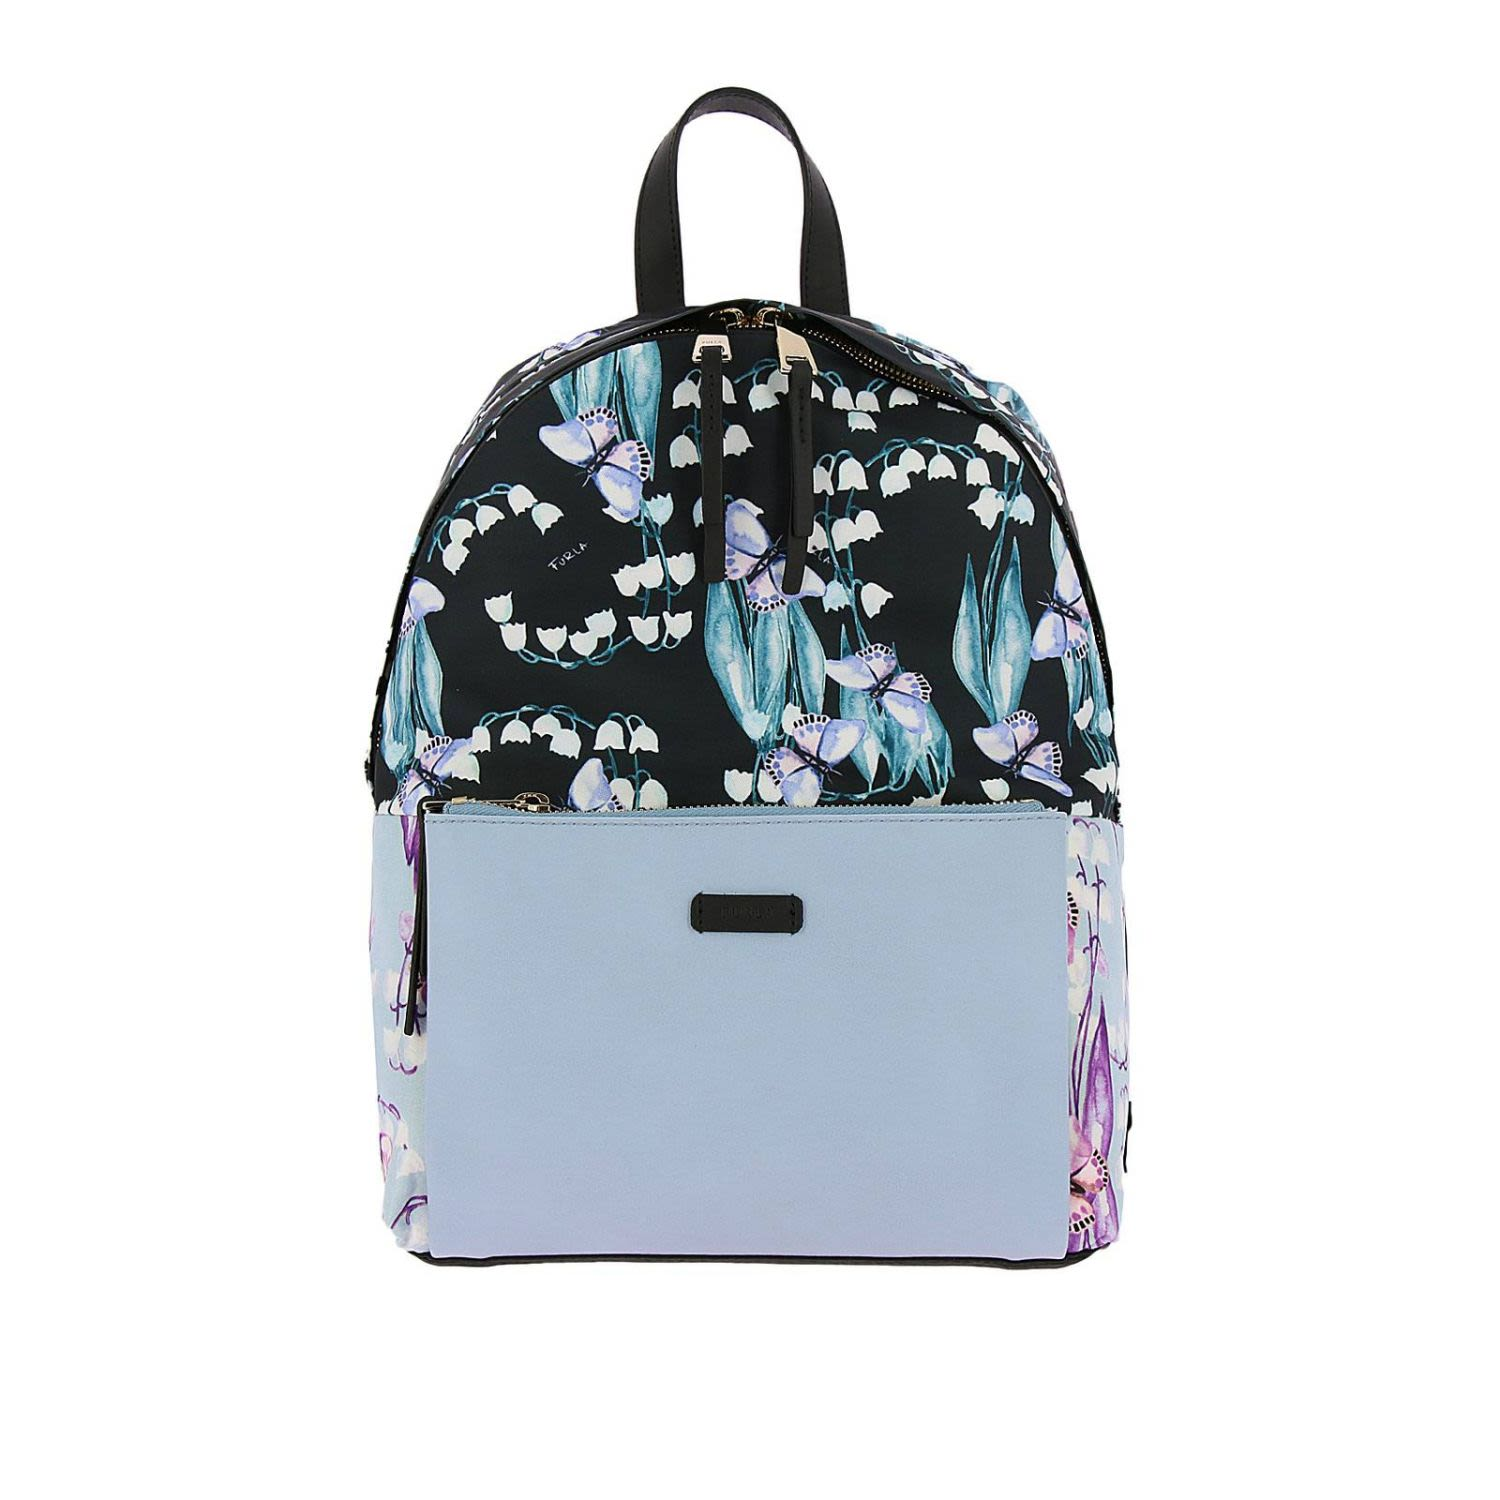 Giudecca Small Floral Print Backpack, Blue